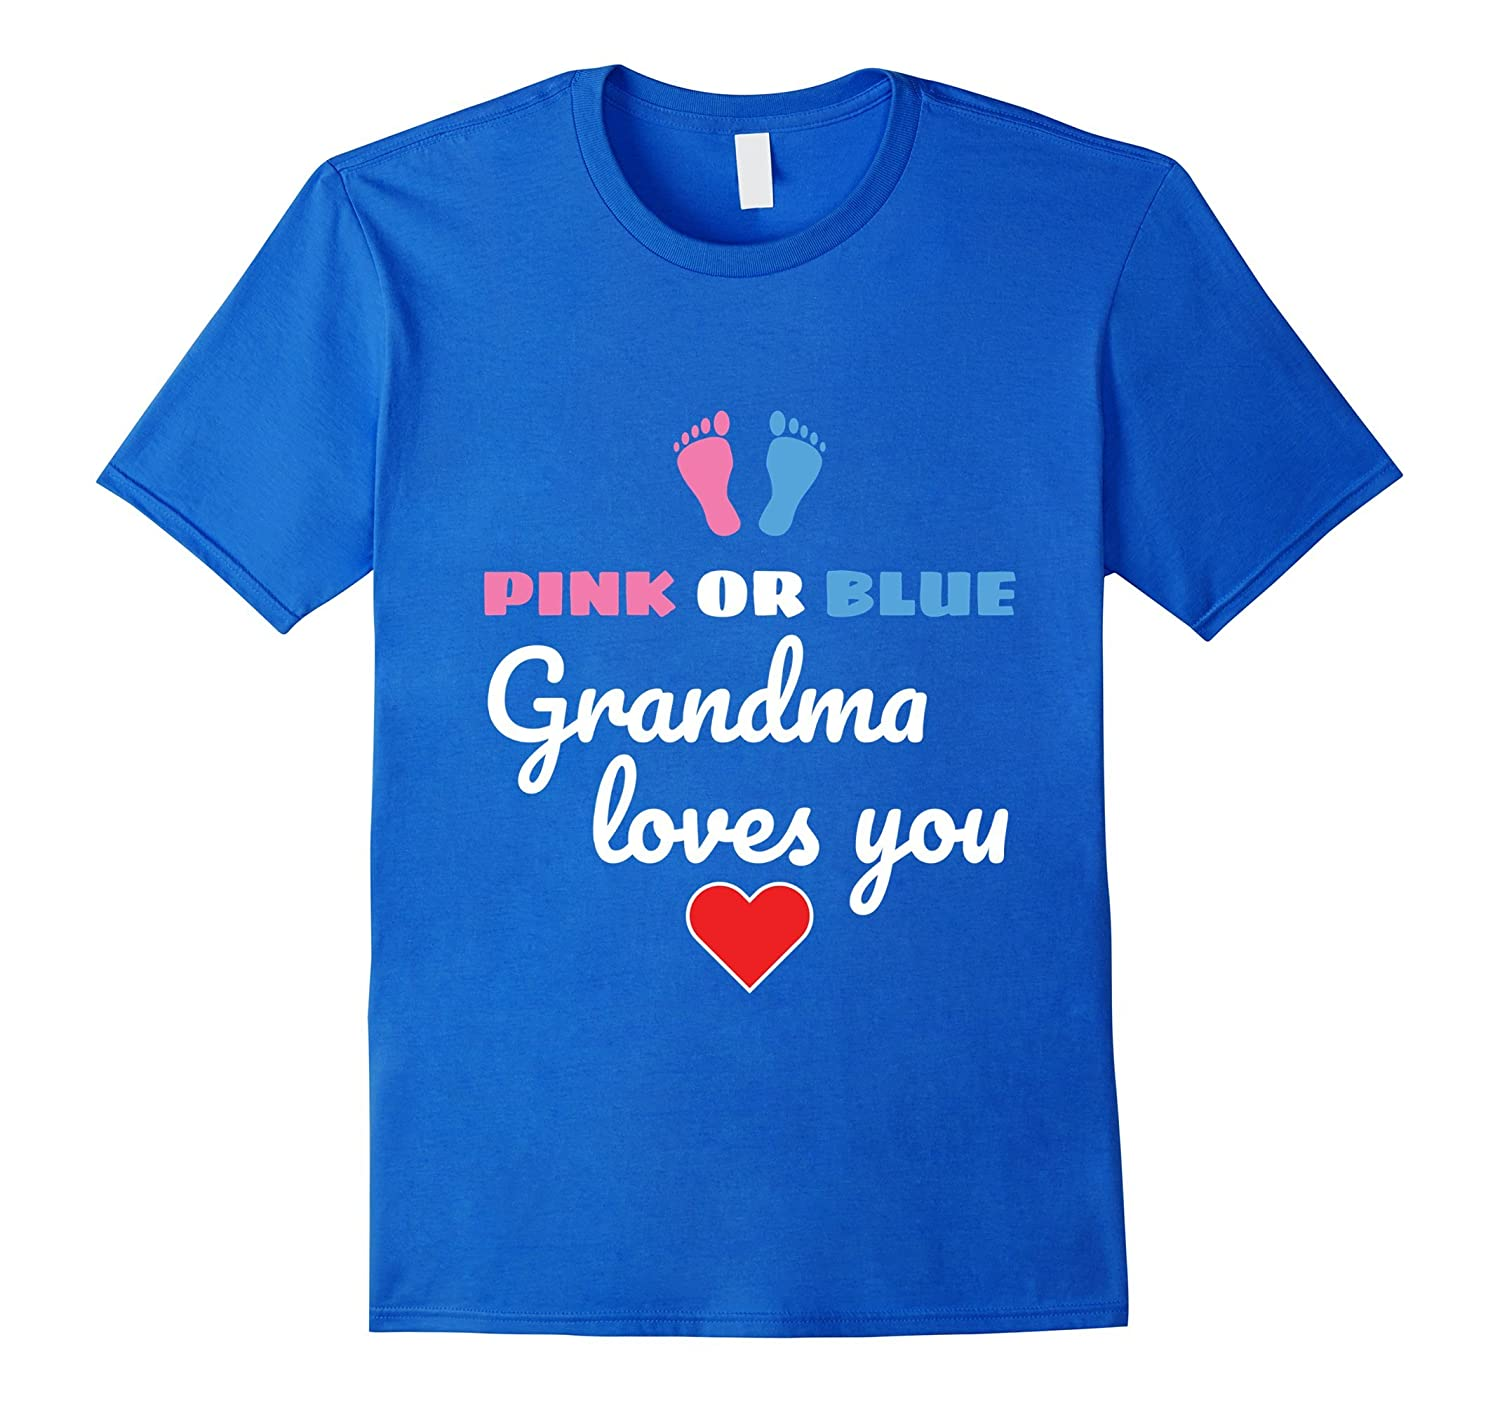 Grandma T Shirt For Gender Reveal Party And Baby Shower Pl Polozatee